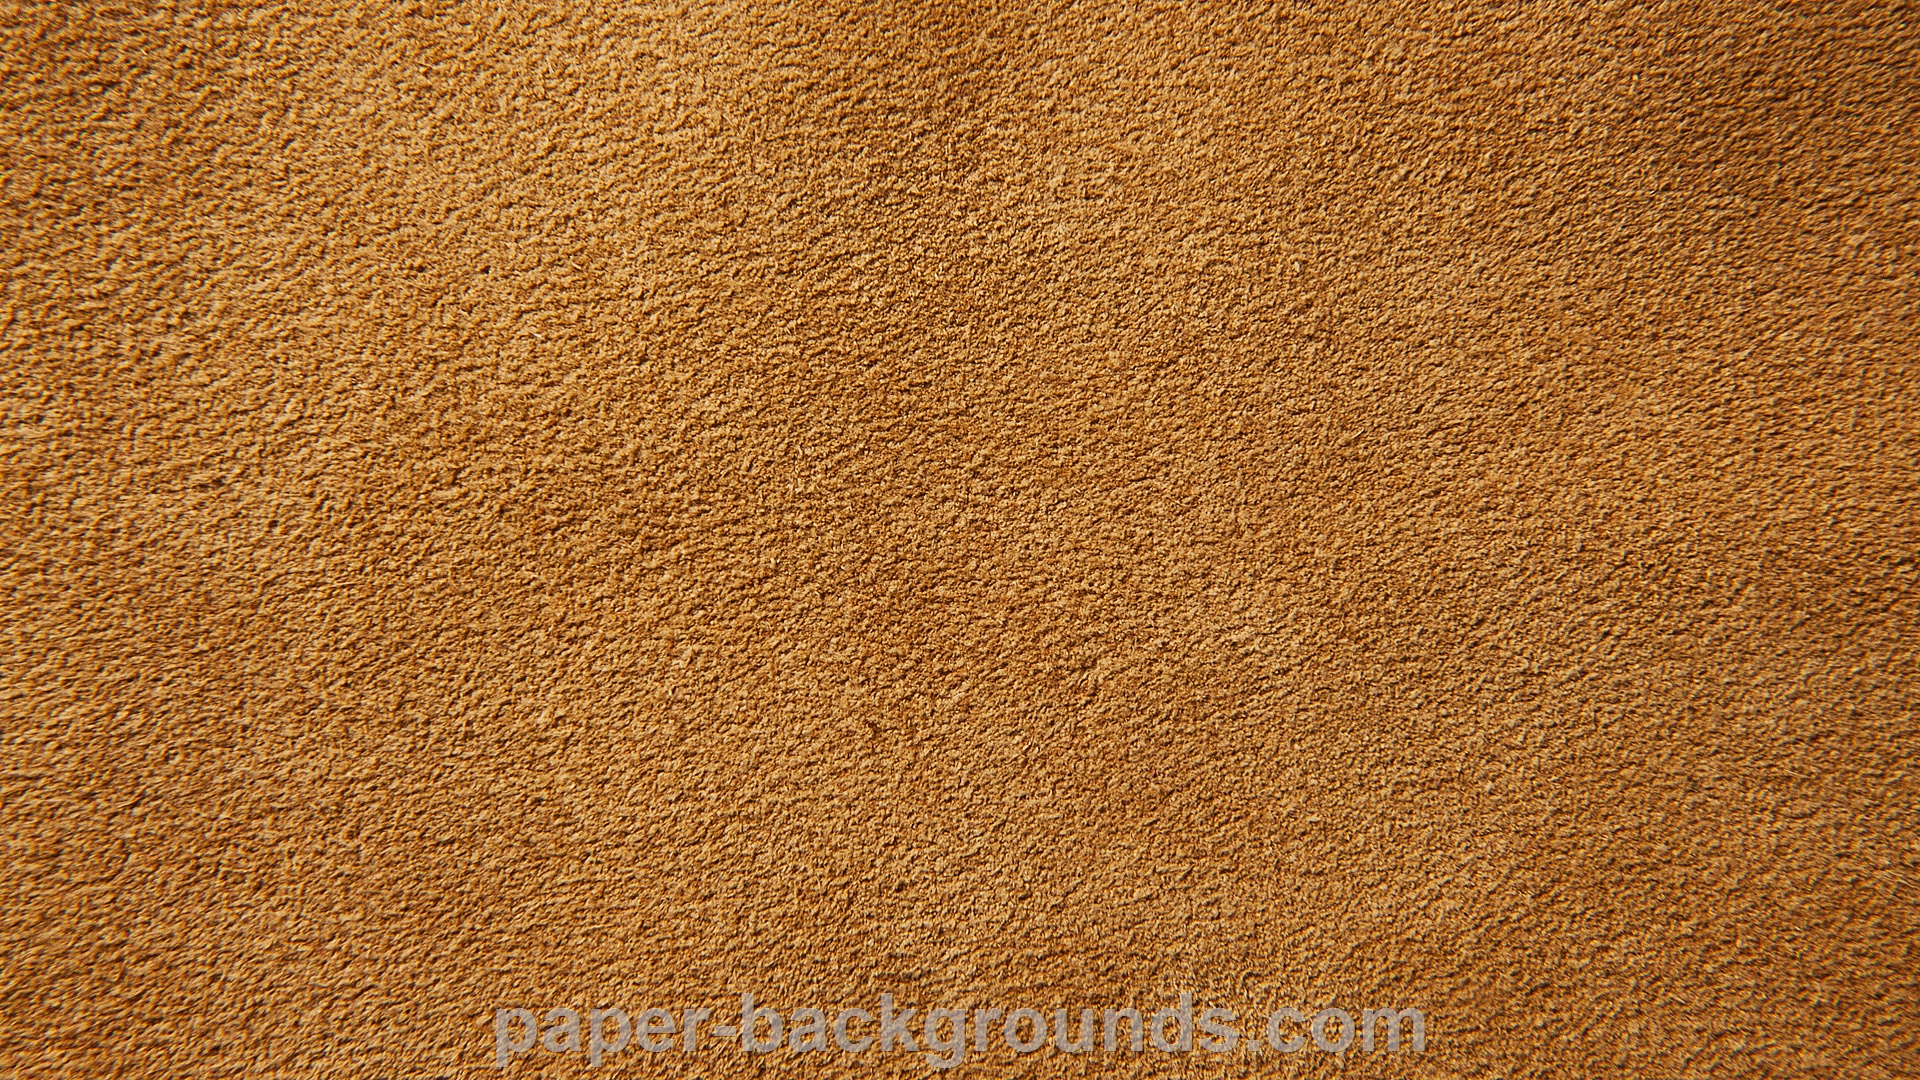 Fluffy Brown Leather Texture Background HD